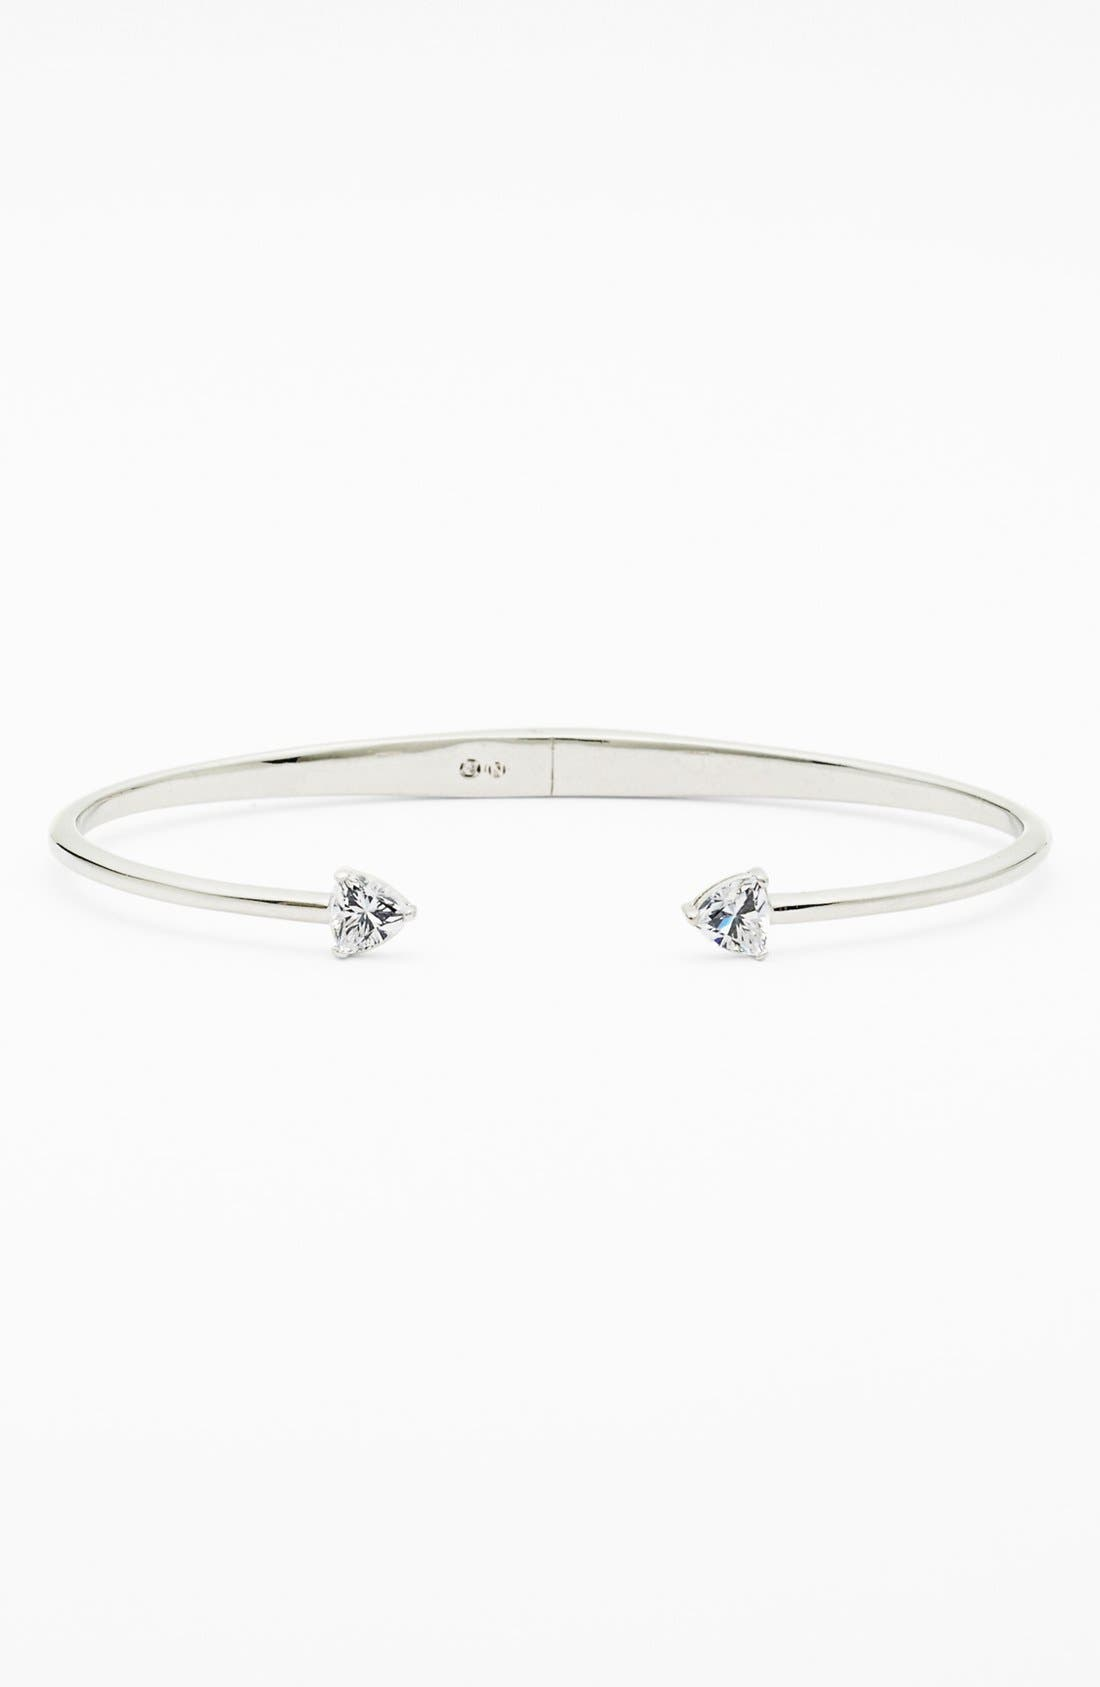 Alternate Image 1 Selected - Nadri Arrow Cubic Zirconia Station Cuff